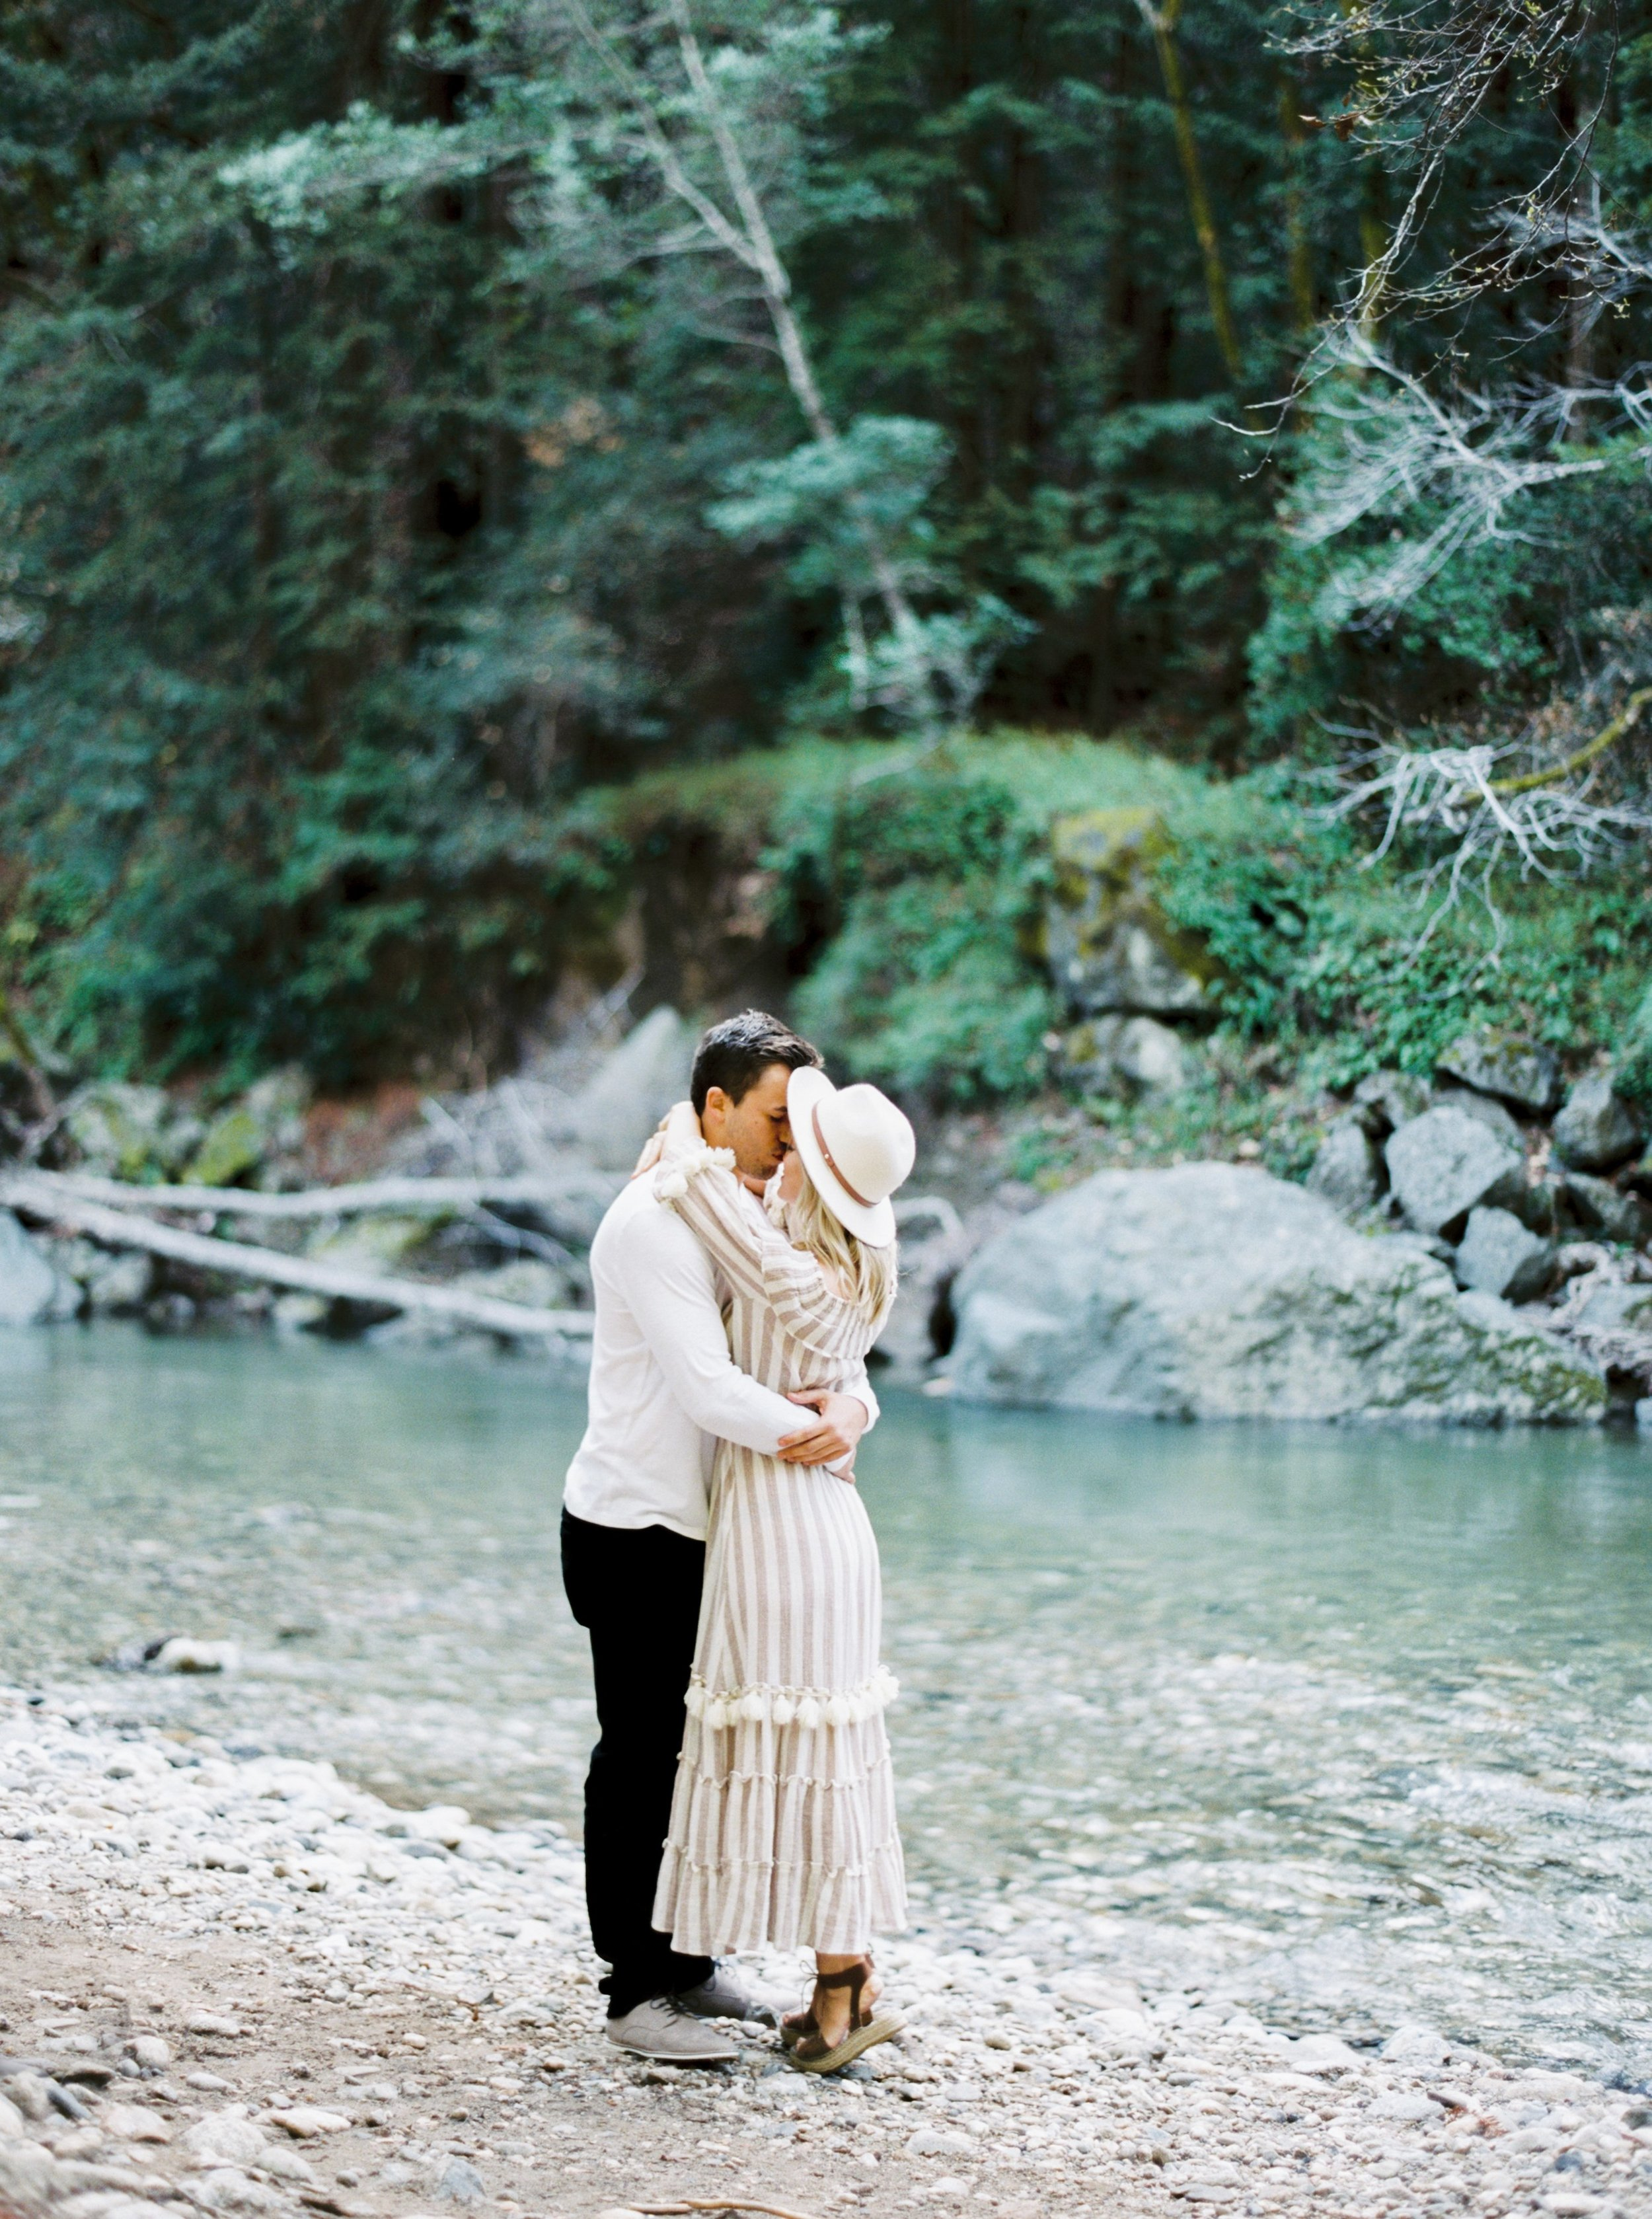 California Fine Art Wedding Photography, Big Sur Engagement Photography,Fresno Wedding photographers, Big Sur Wedding photographers, Fine art film photographer, Big Sur California photographers